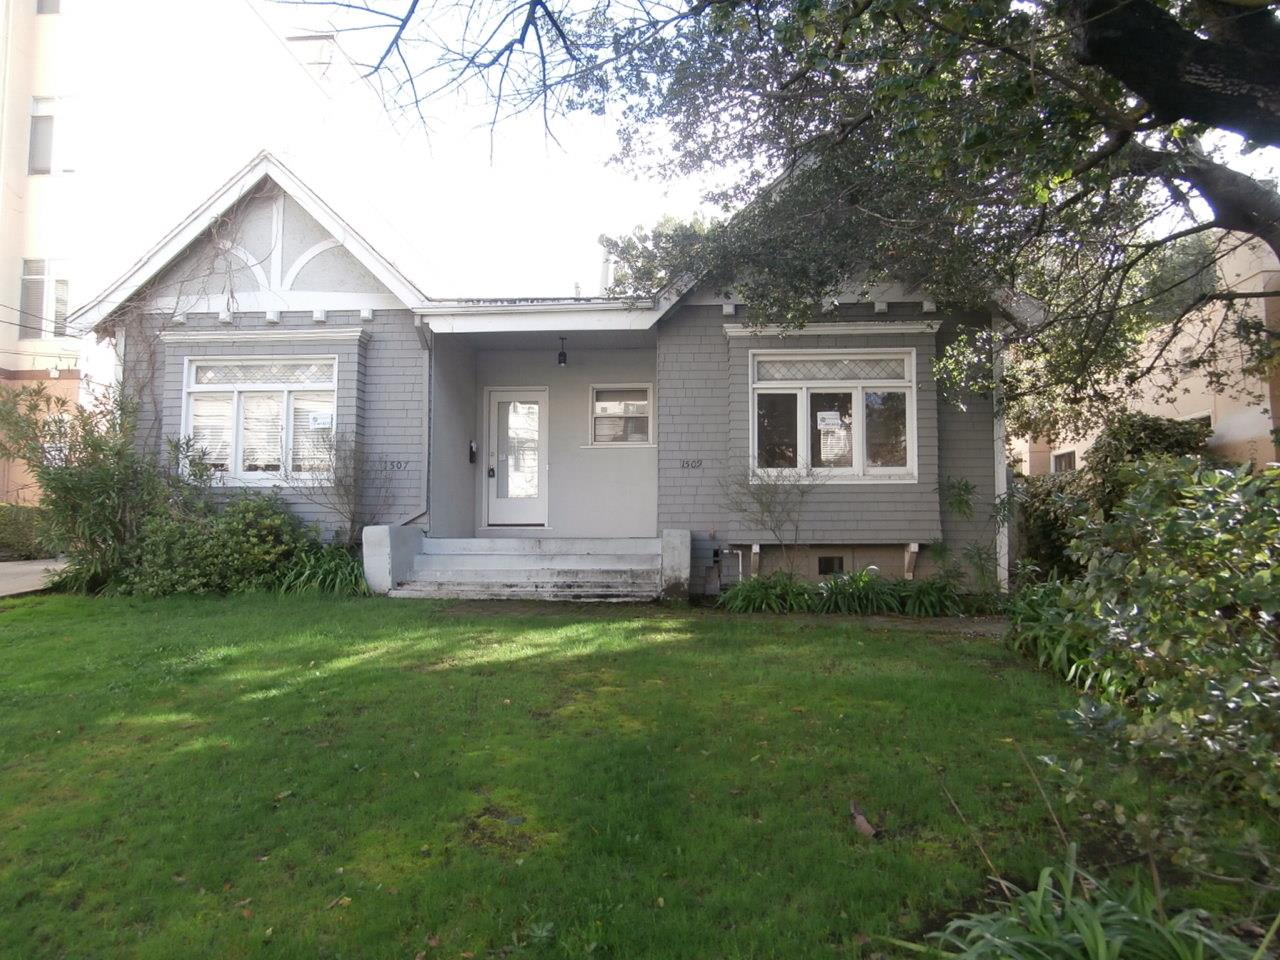 1507-1509 Willow Ave, Burlingame, CA 94010